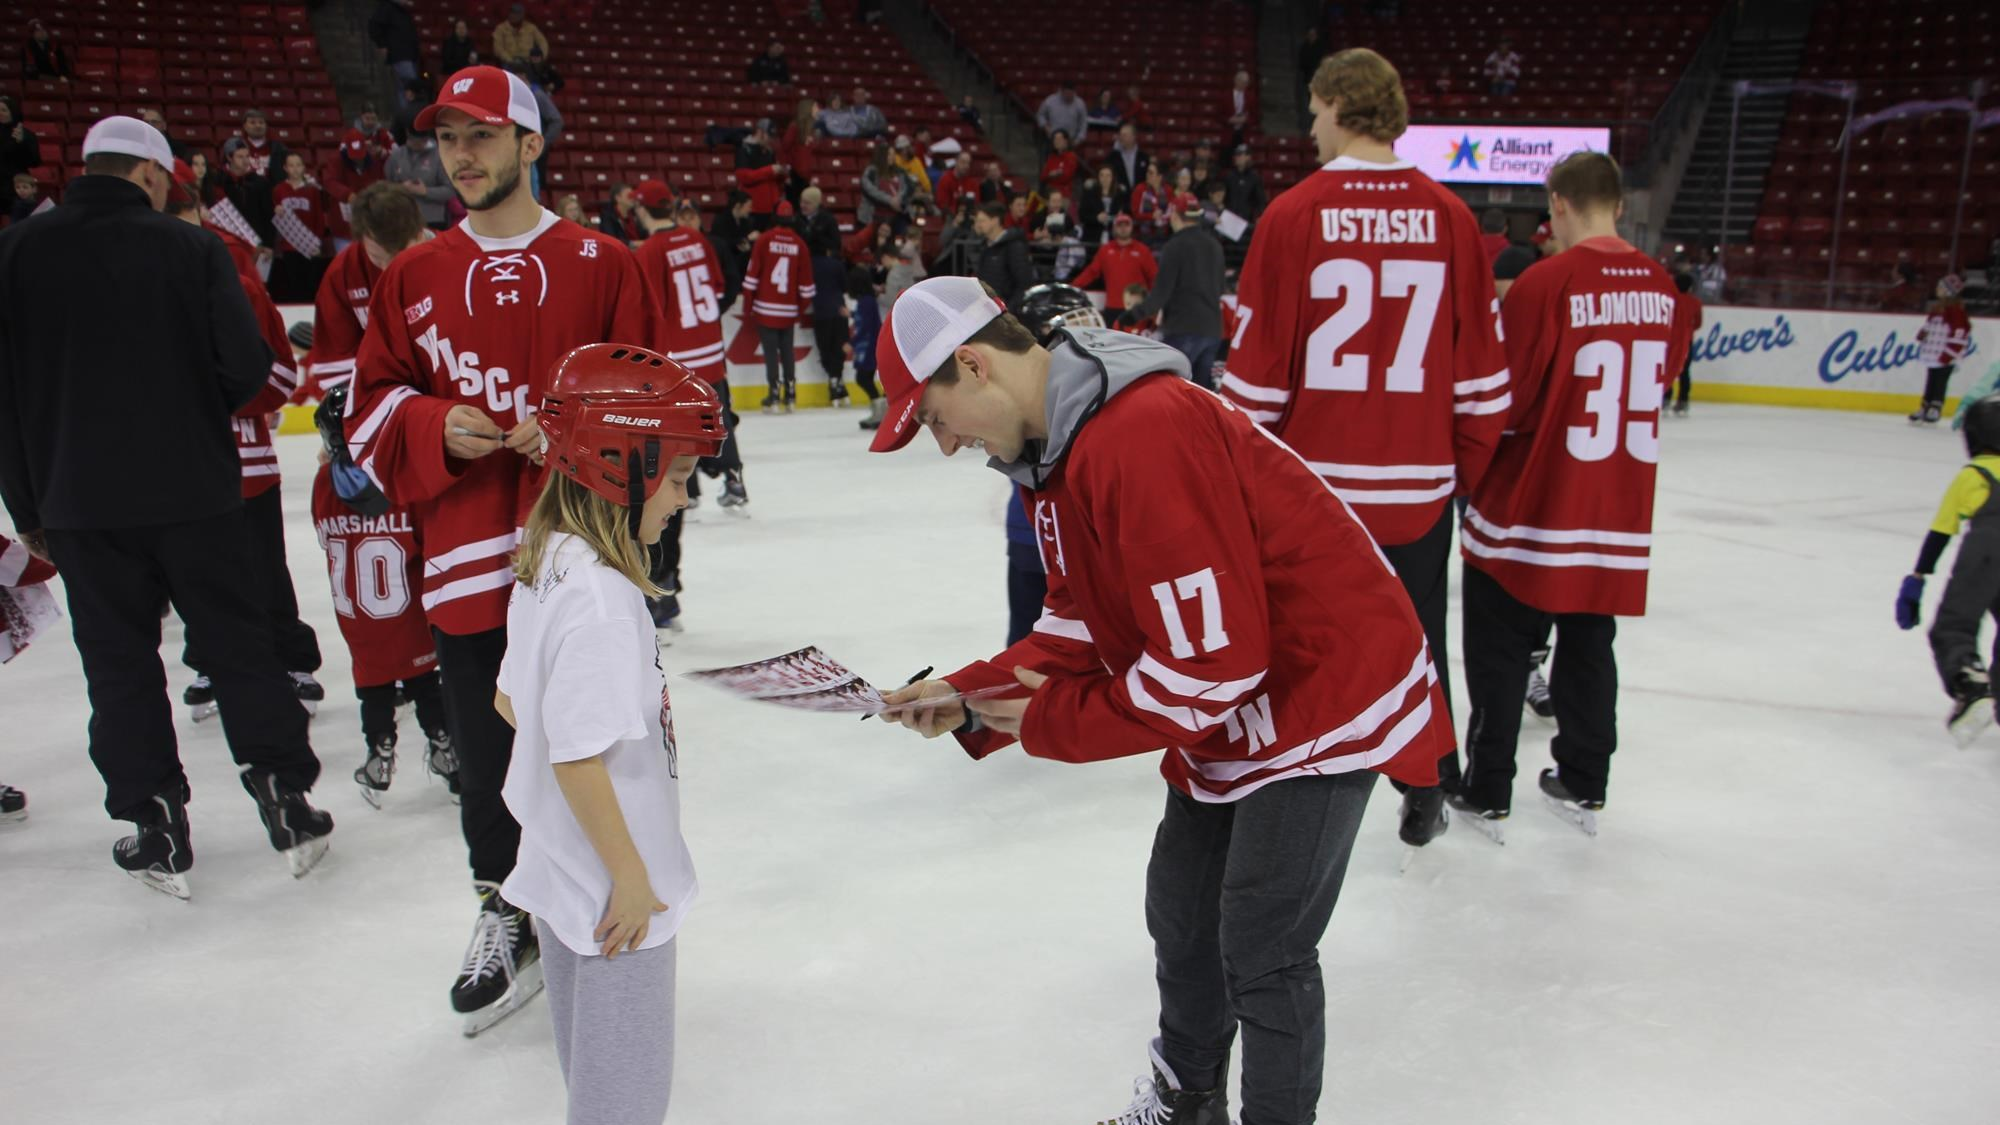 Skate With The Badgers Returns To The Kohl Center This Week